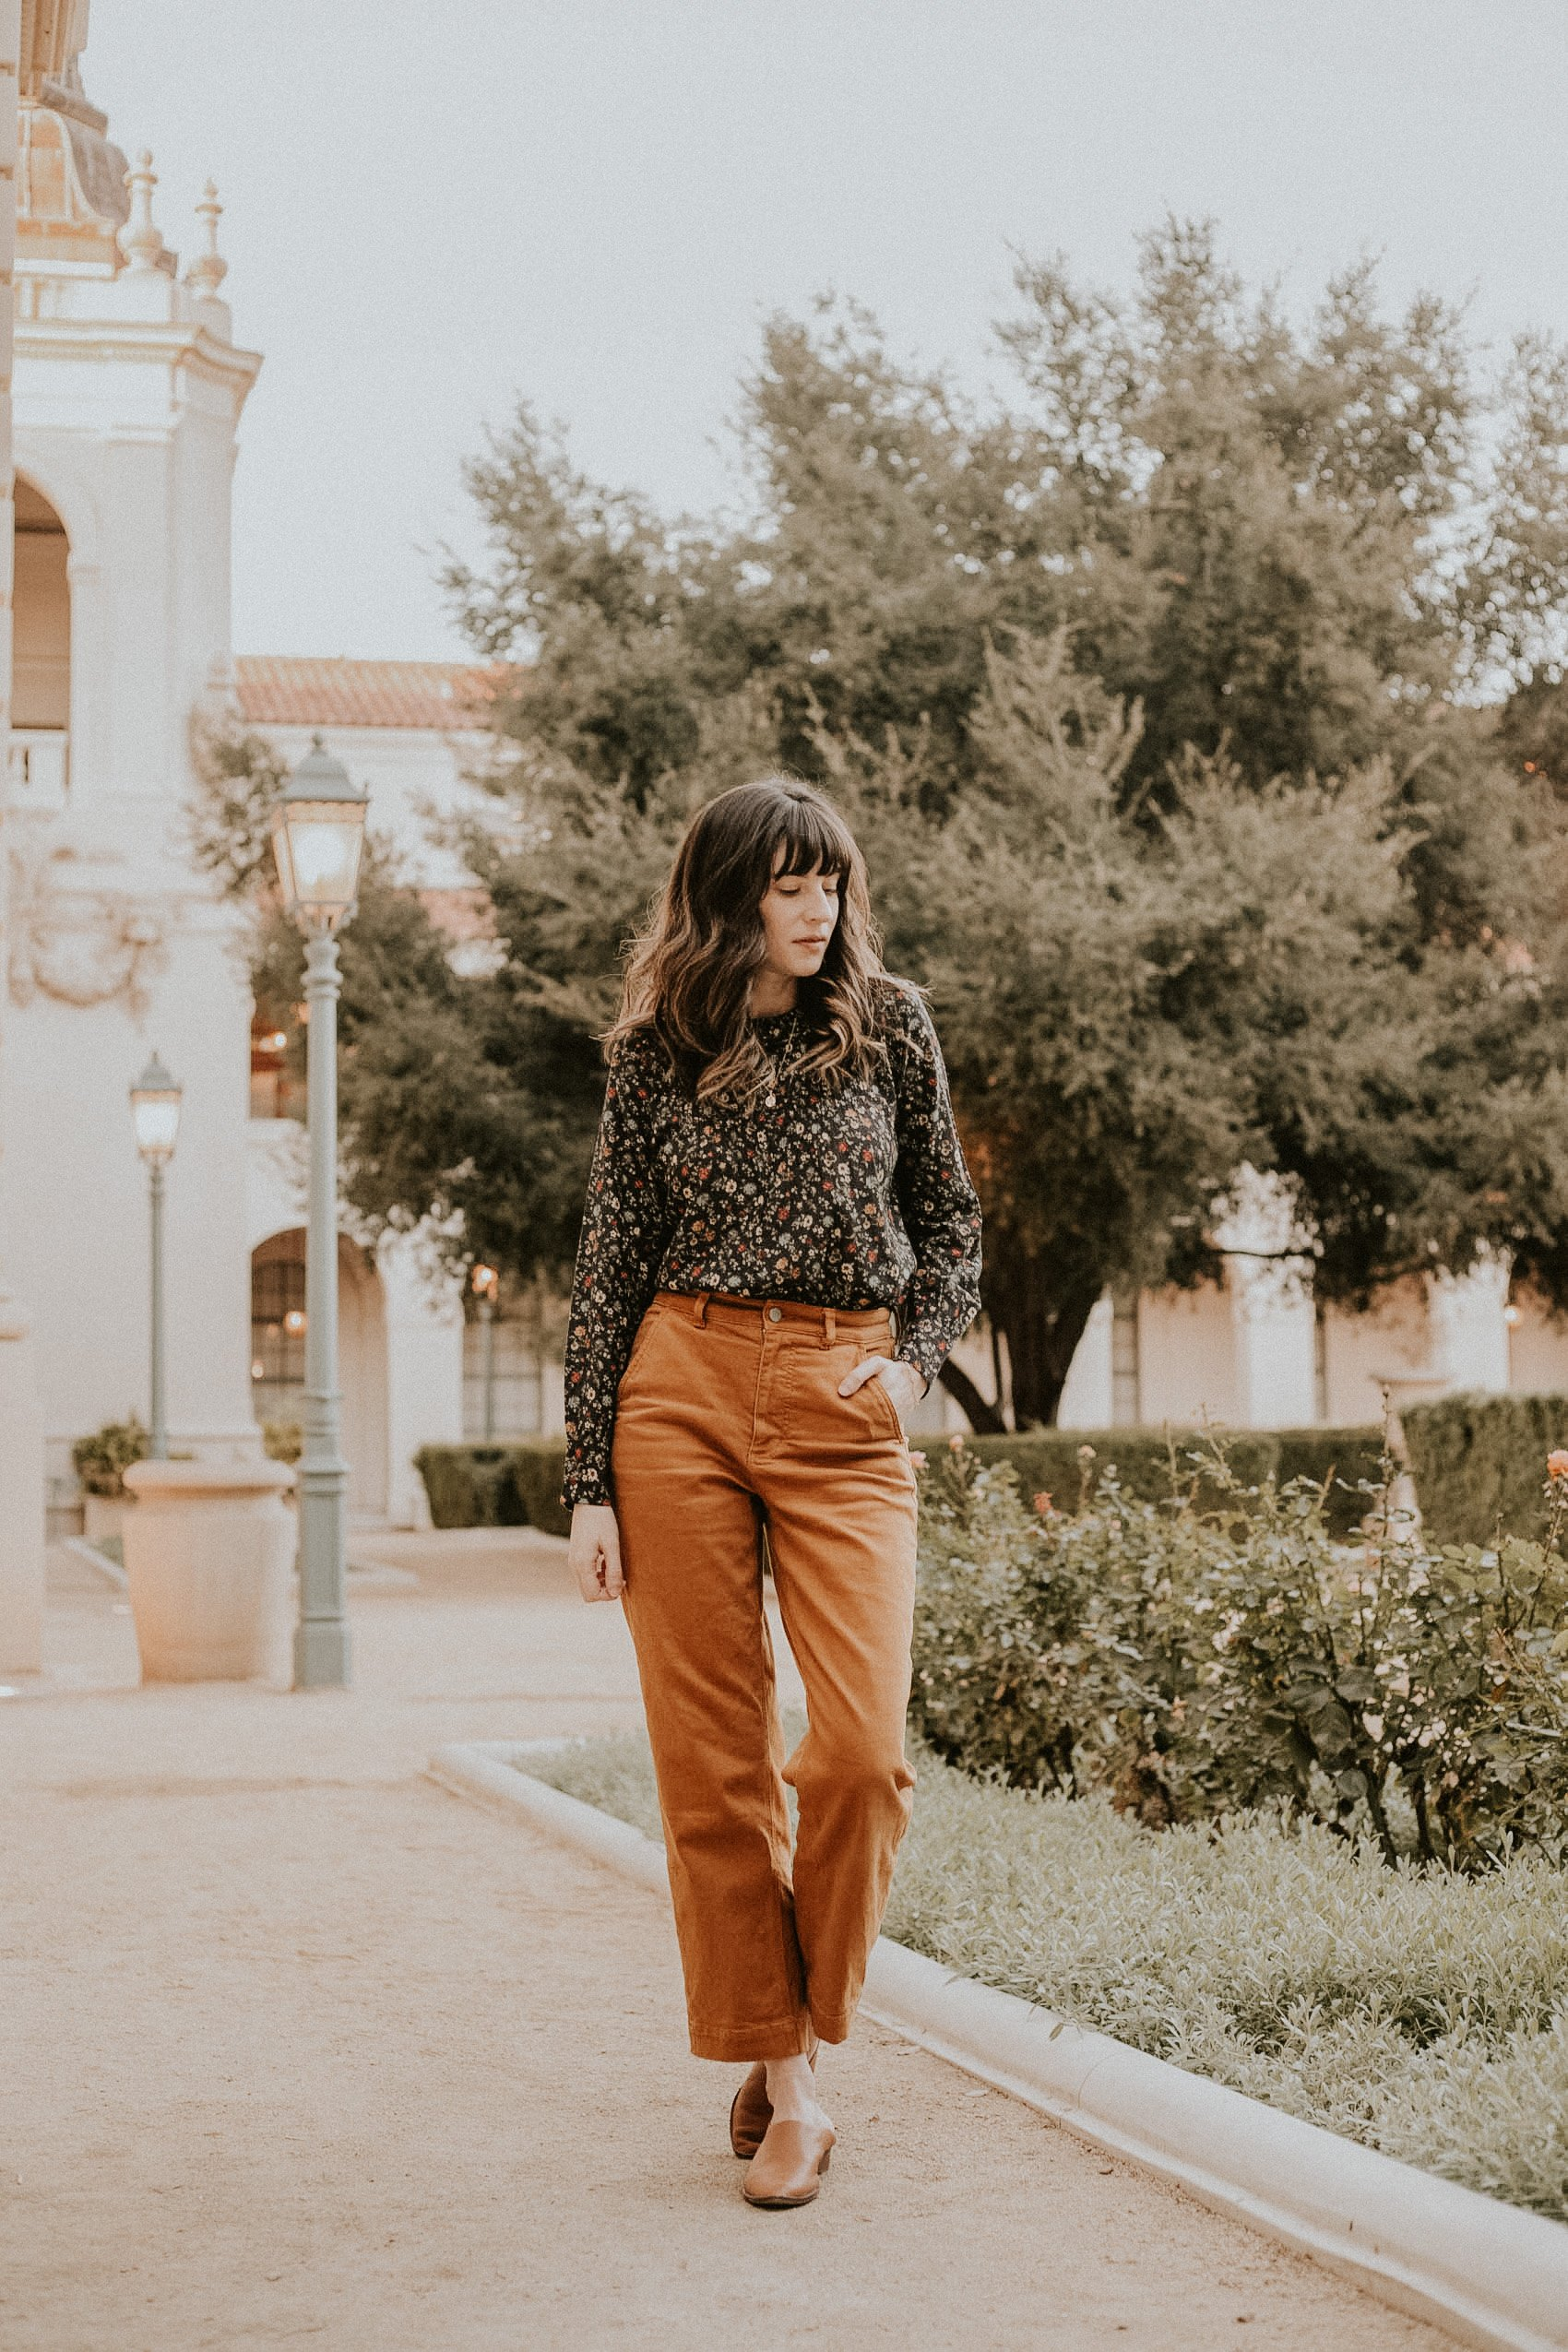 Doen Fall Floral Plum Top Review with Everlane Straight Leg Pants